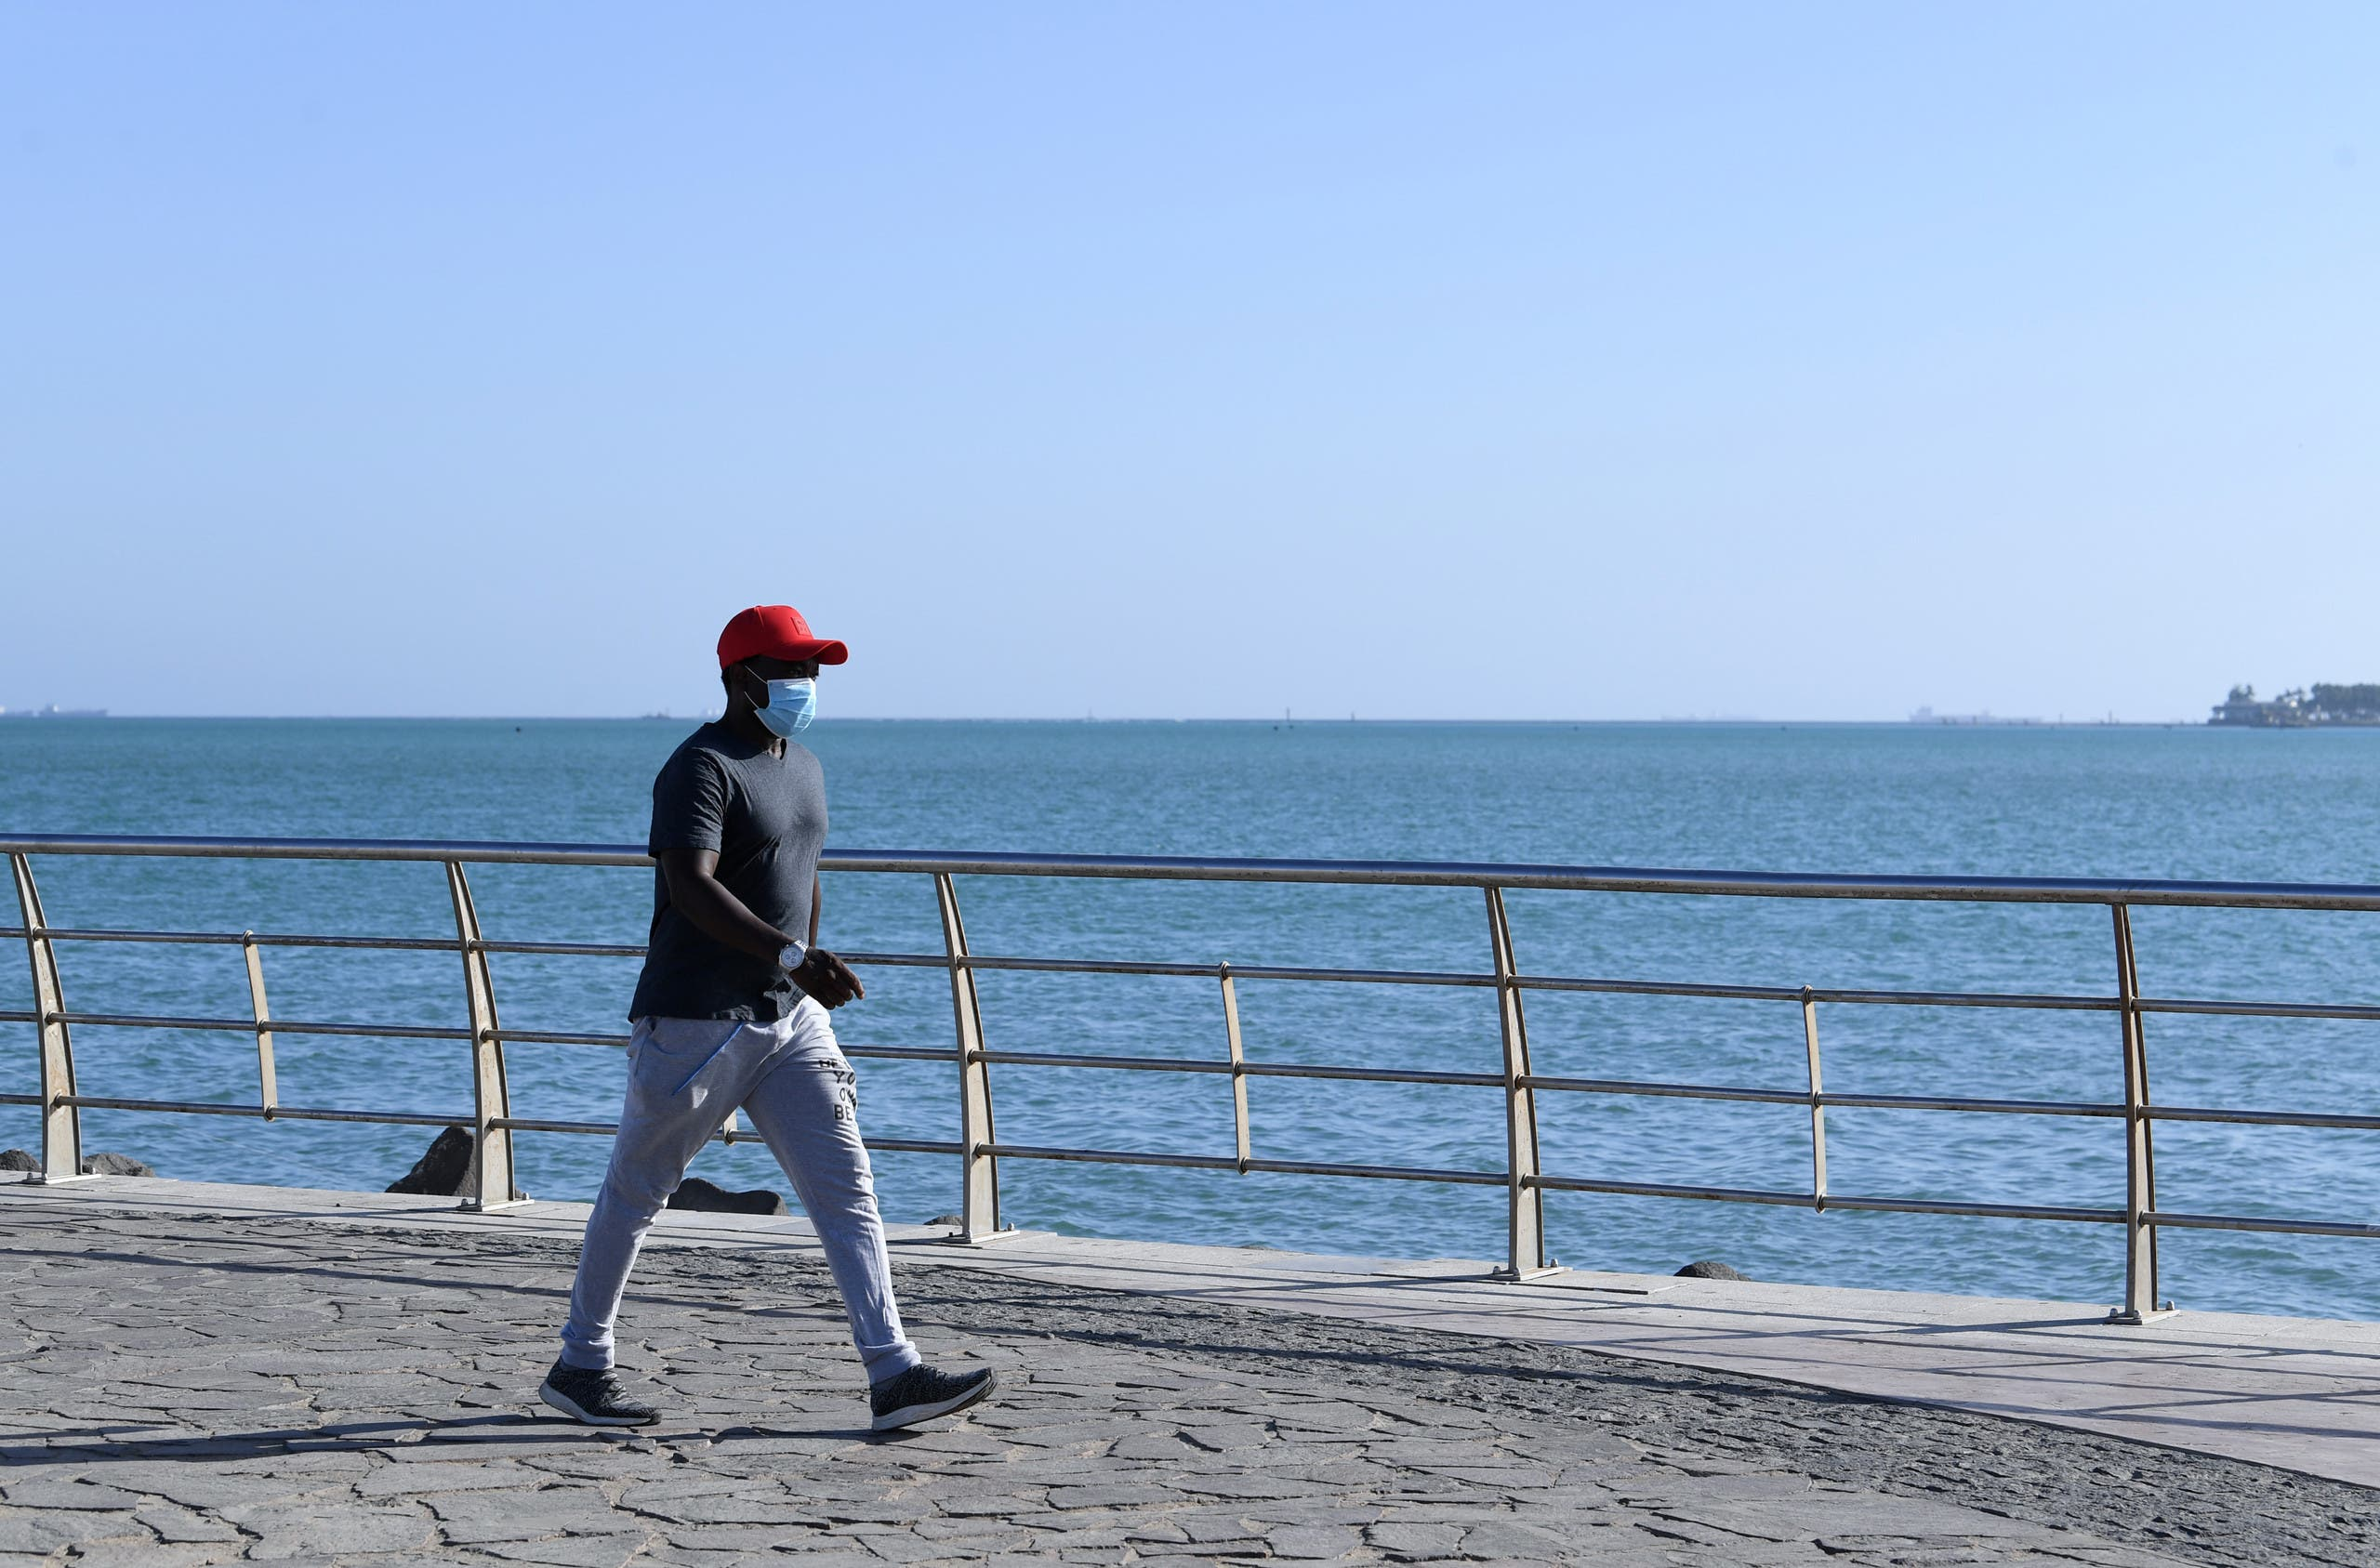 A man walks at the seafront promenade in the Saudi seaport of jeddah, on June 21, 2020, as the country re-opens following the lifting of a lockdown due to the COVID-19 pandemic. (AFP)